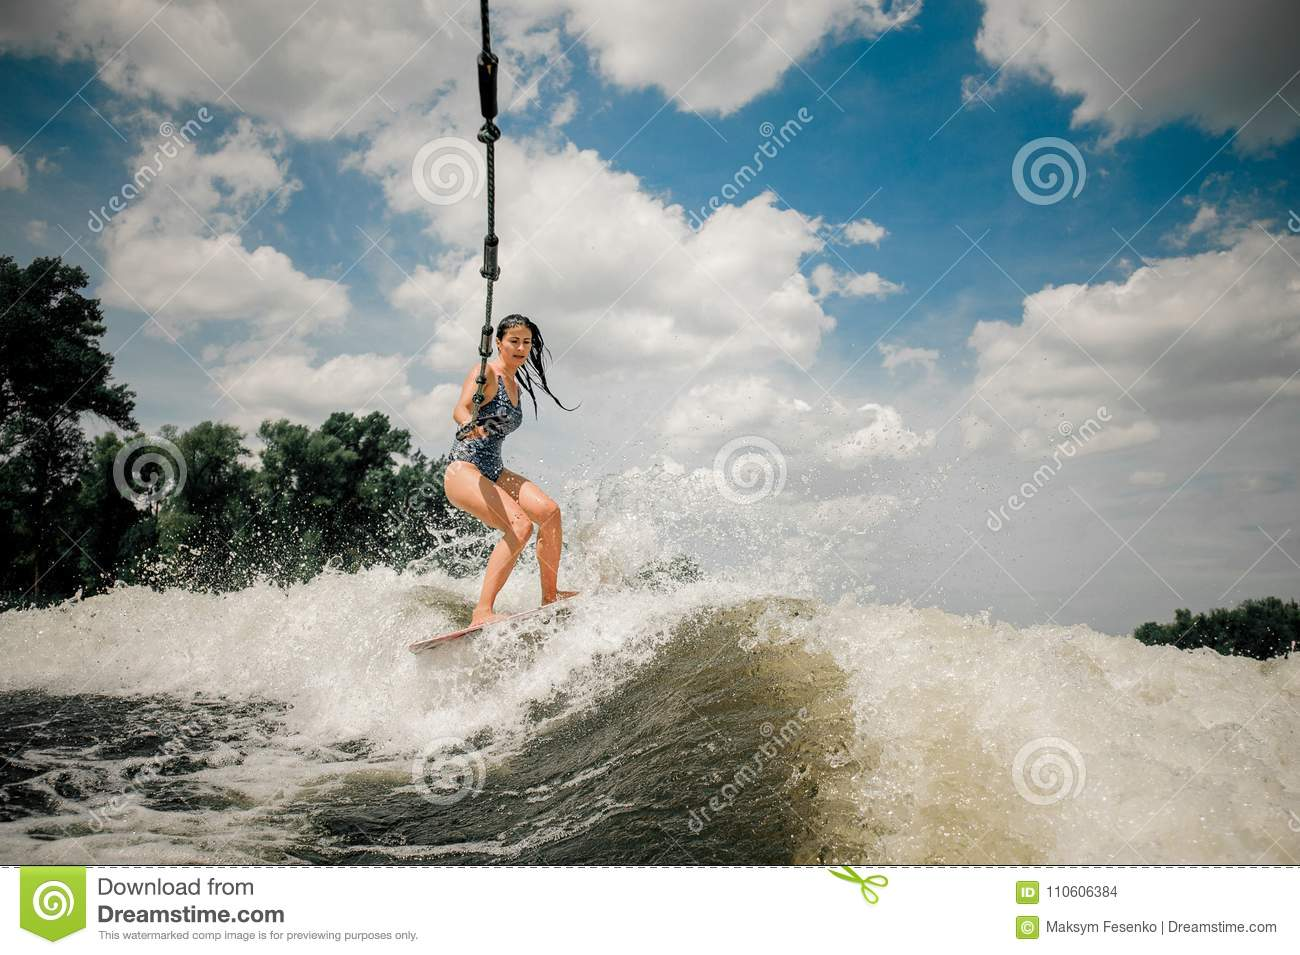 The ladys wakeboard is towed behind a motorboat by rope